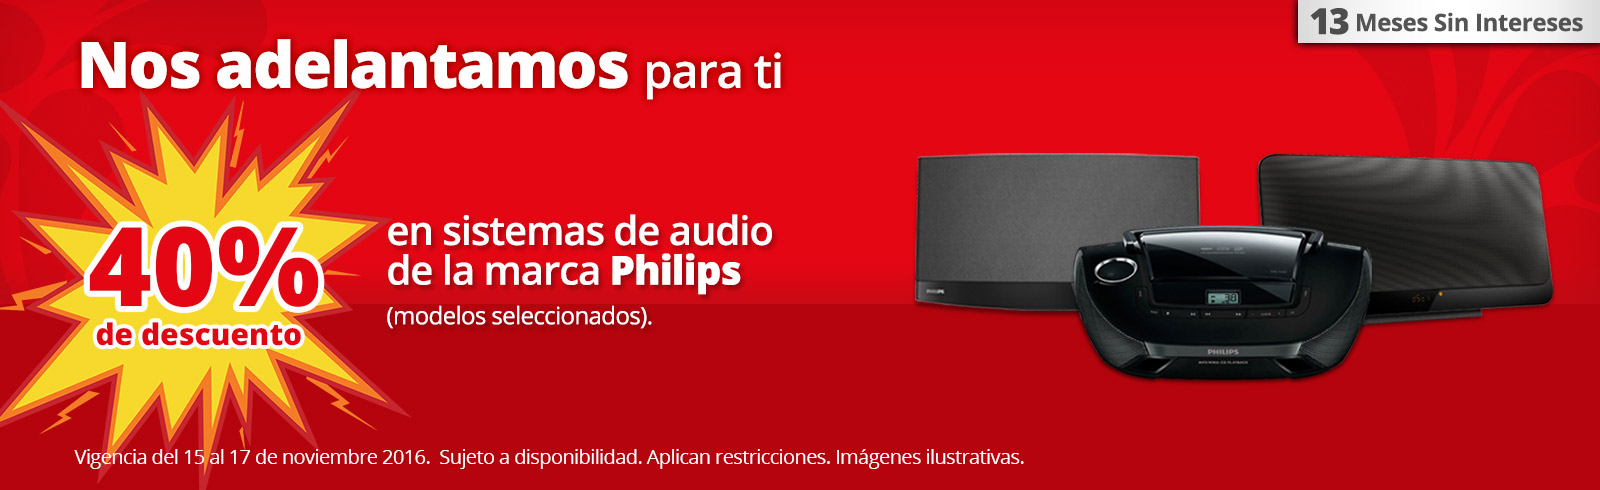 hero-banner-promos-buen-fin-phillips